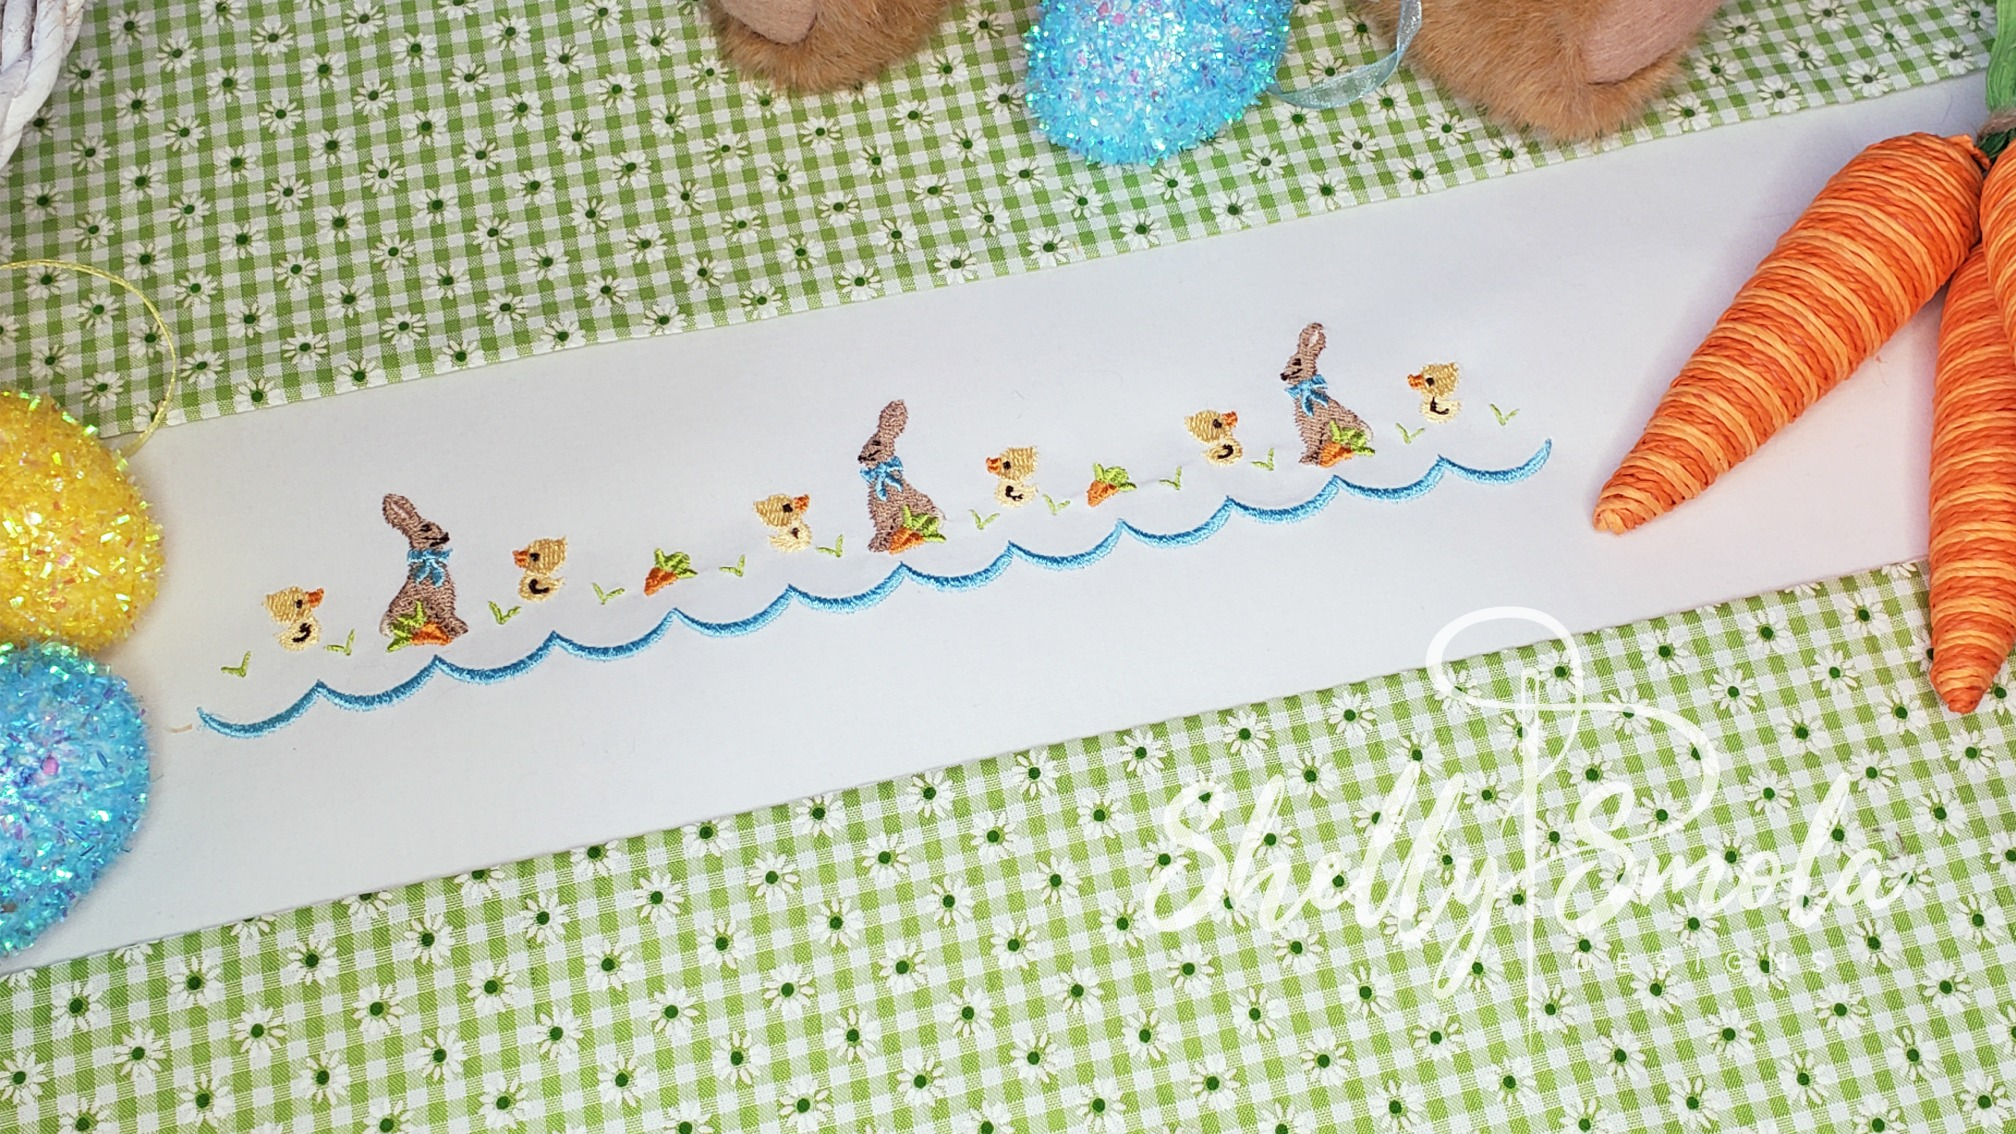 Spring Accent Border by Shelly Smola